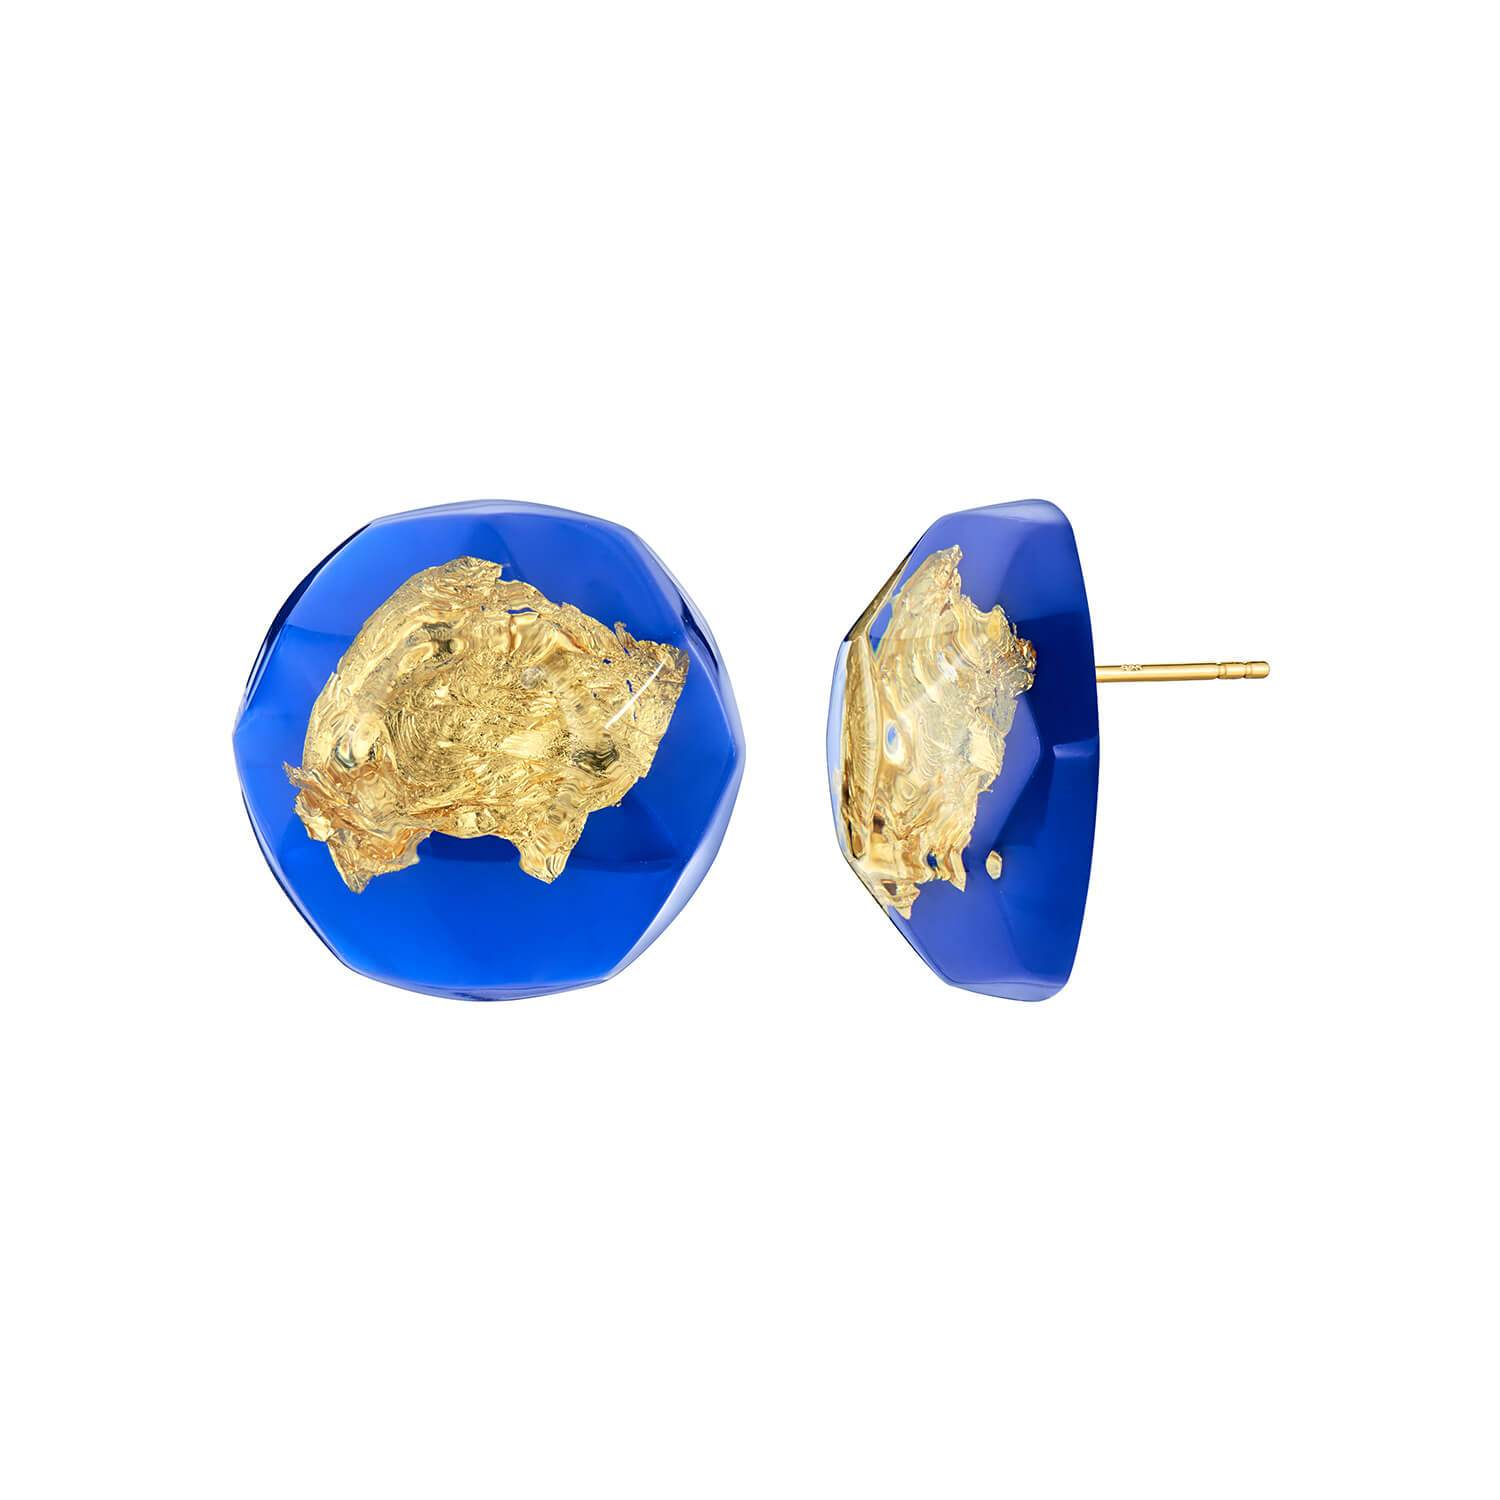 24K Gold Leaf Button Stud Earrings - Blue